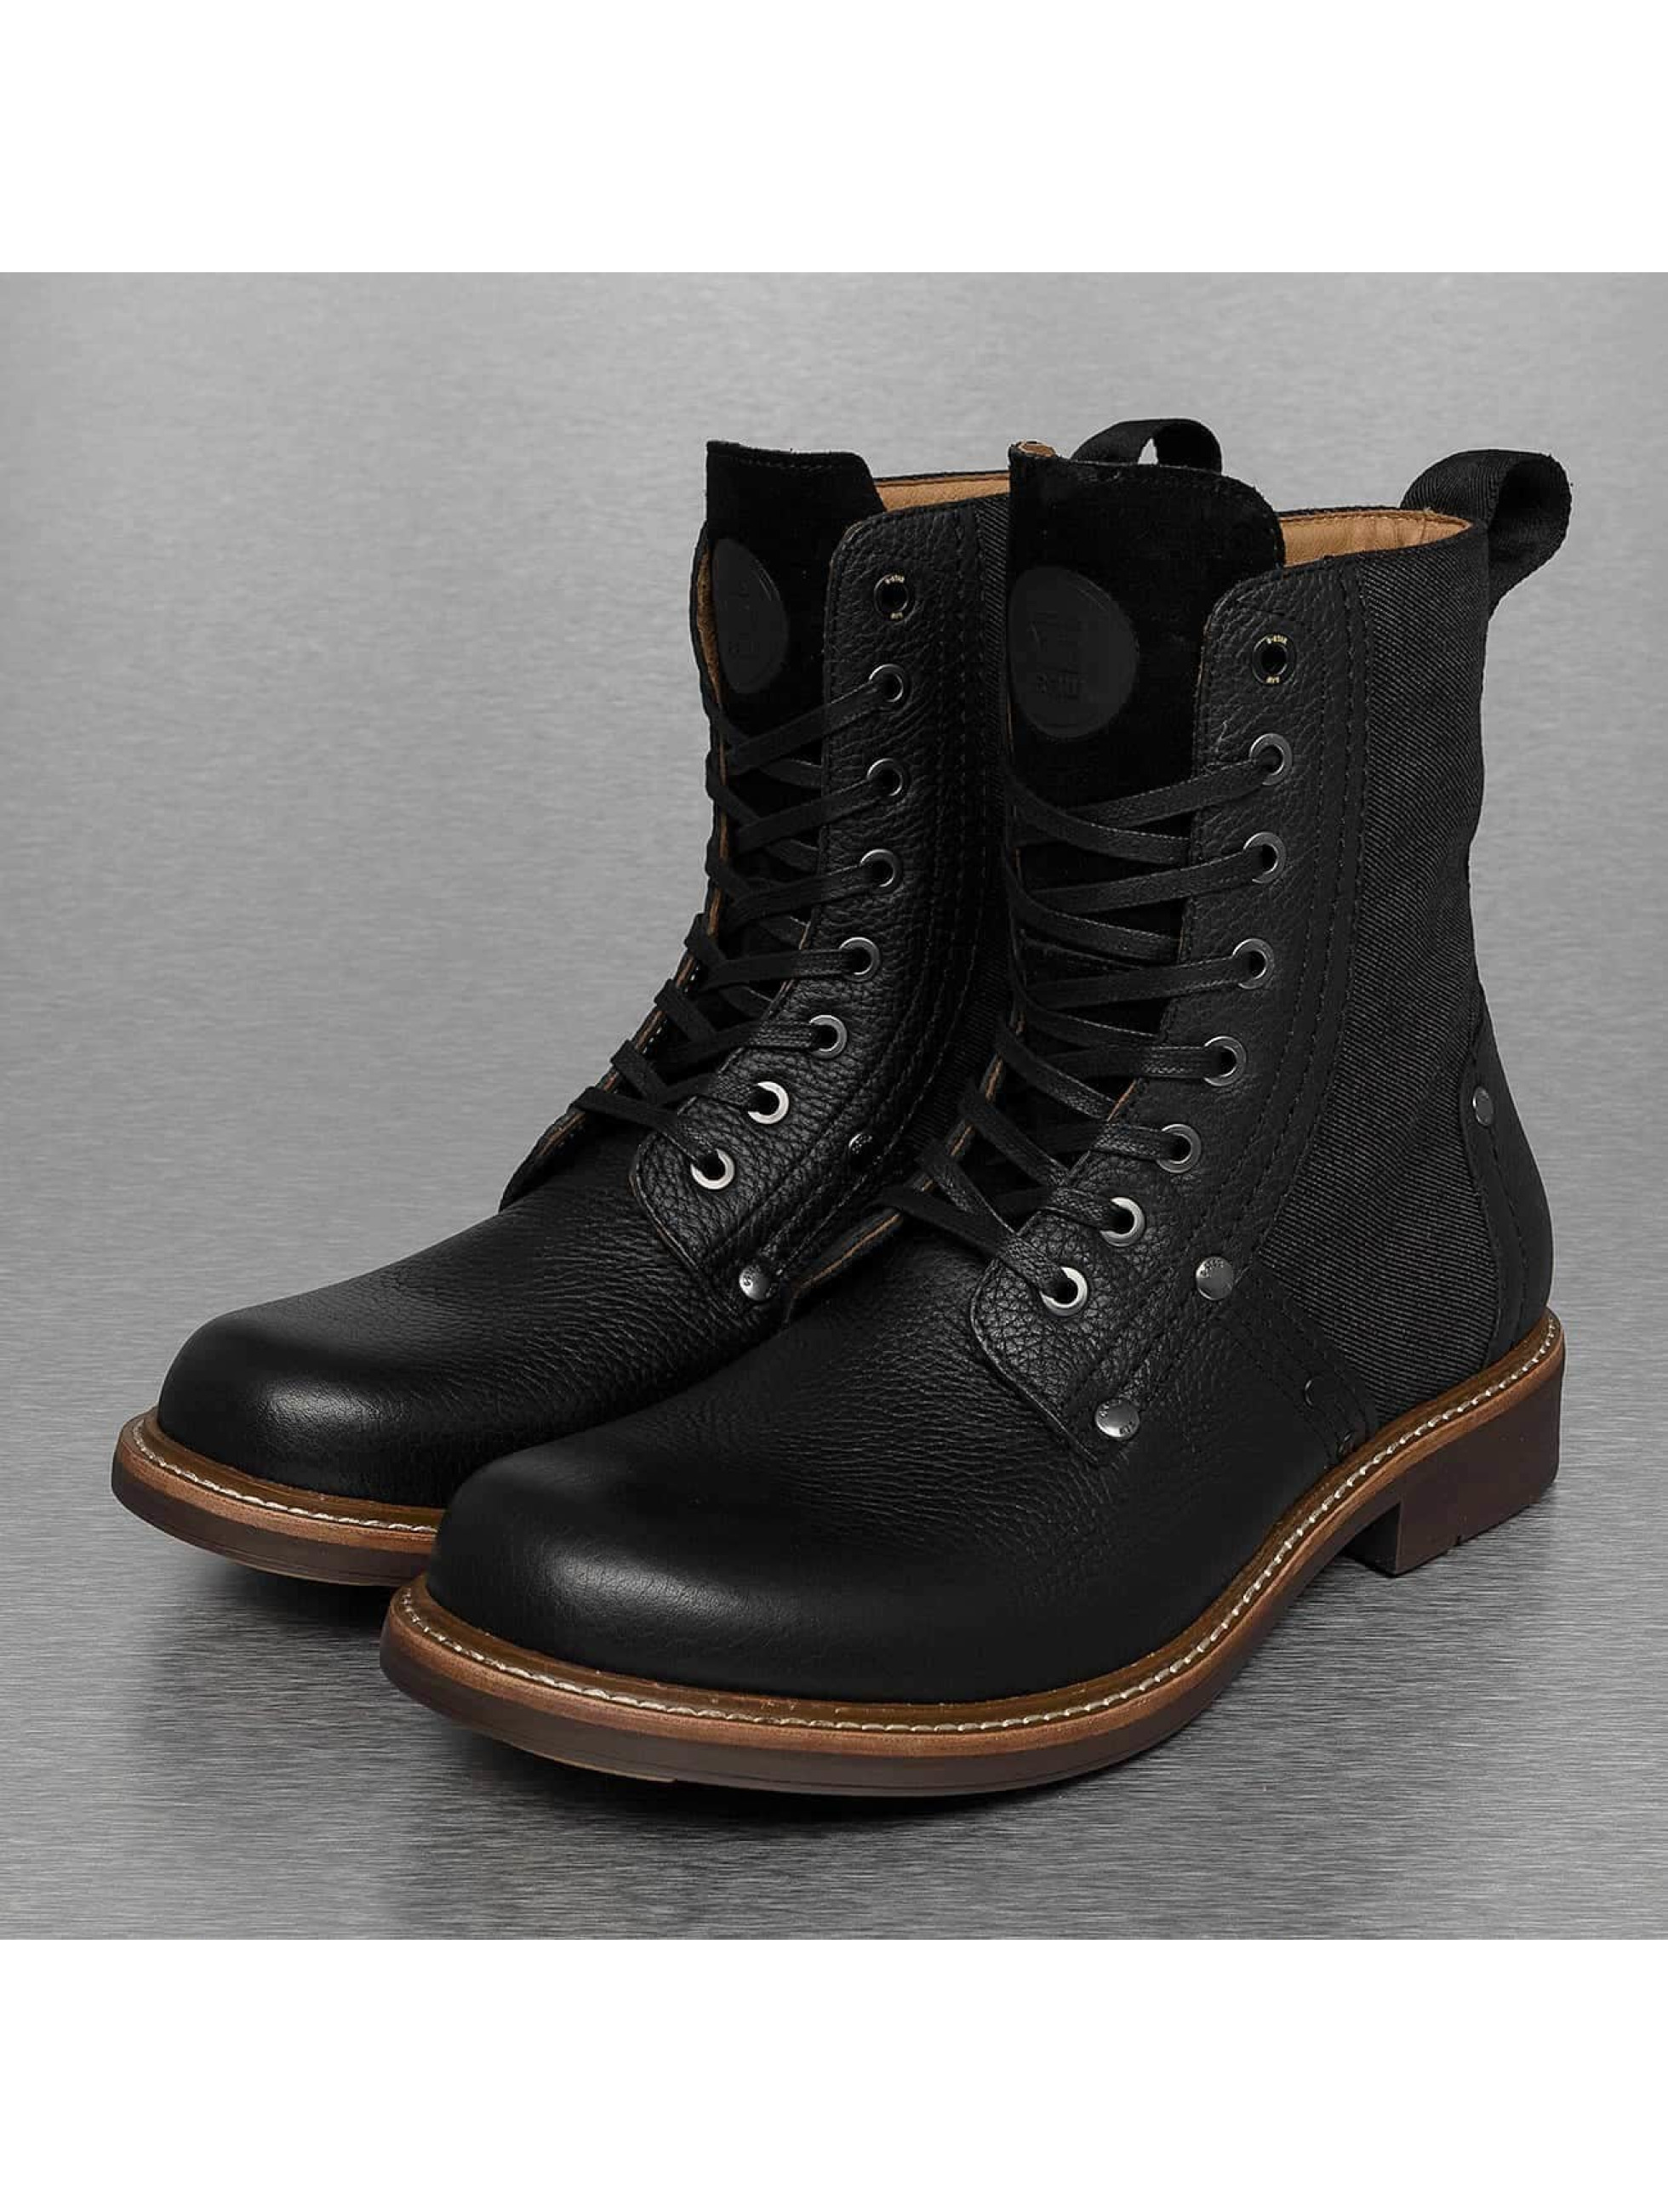 G-Star Boots Labour Leather black